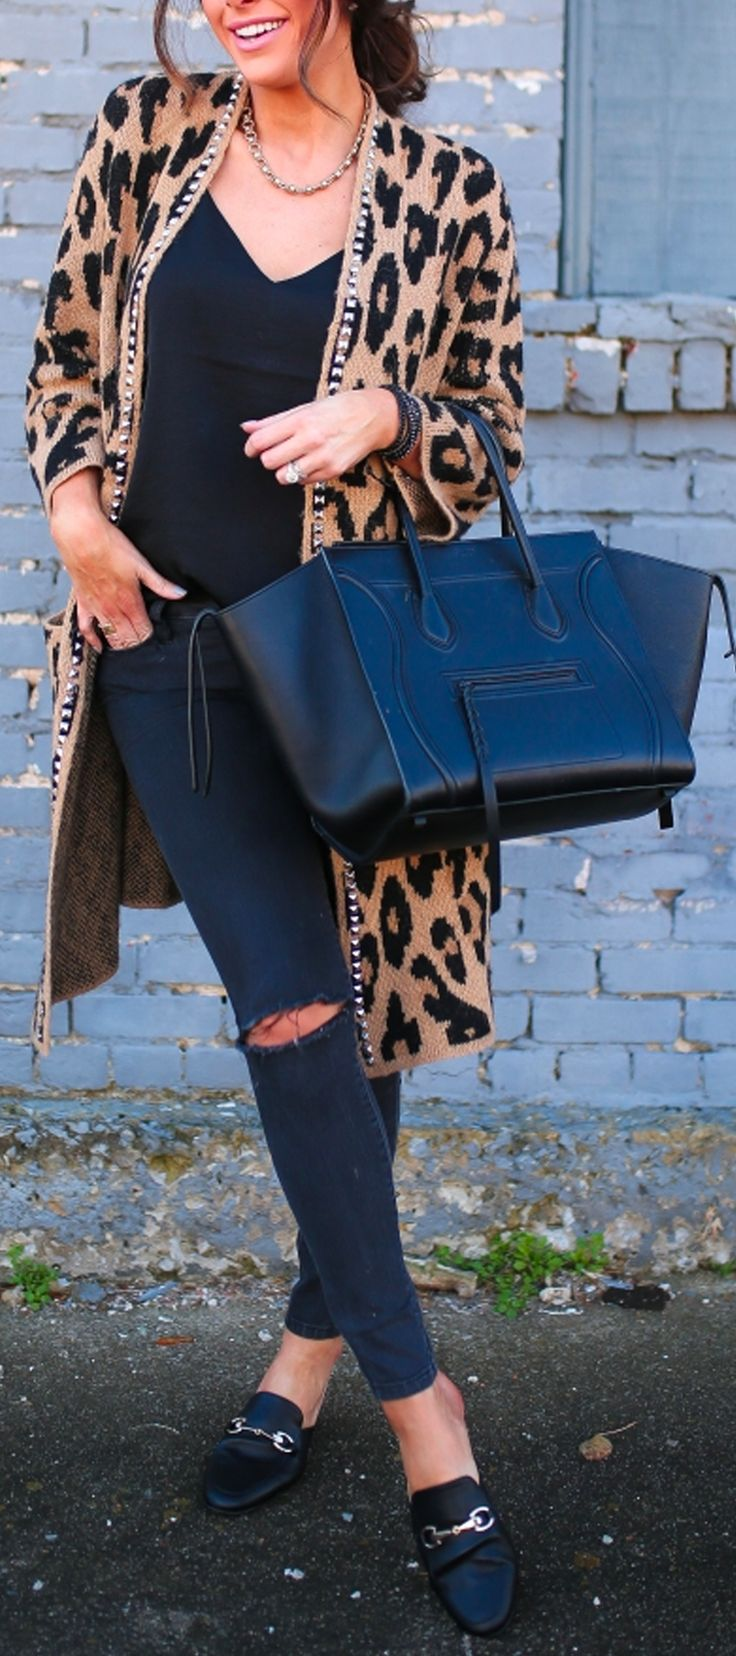 Animal Print Cardigan, black tee, black jeans, black Gucci flats, black Celine bag. Joe's Jeans cardigan, Express Cami, DL1961 Denim, Target flats (gucci dupes!) victoria emerson necklace and bracelet, Celine Bag. Fashion Blogger, Casual Outfit, Fashion Inspiration, Fall Outfit, Winter Outfit. The Sweetest Thing Blog, Emily Ann Gemma.  #makeup #emilygemma #thesweetestthingblog #fallfashion